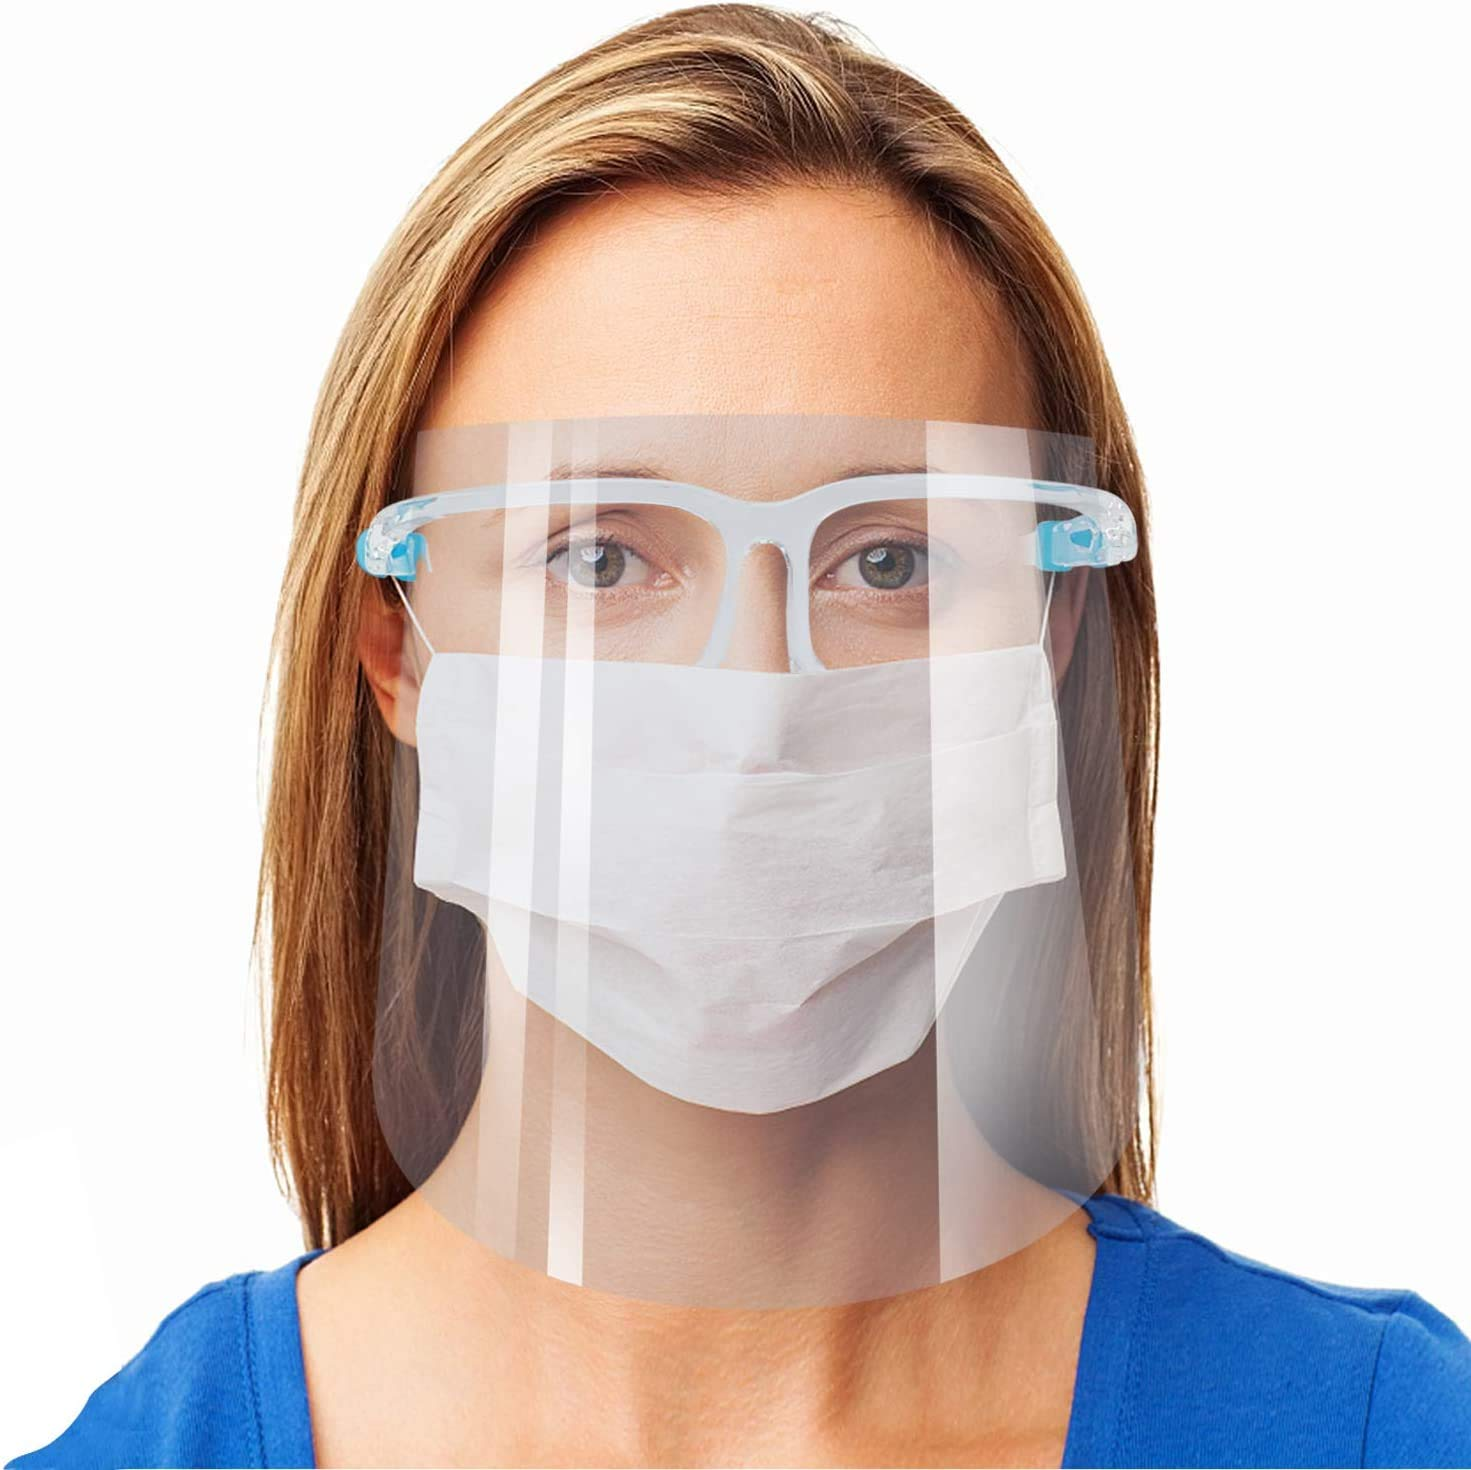 Safety Face Shield Reusable Goggle Shield Wearing Glasses Face Visor Transparent Anti-Fog Layer Protect Eyes from Splash